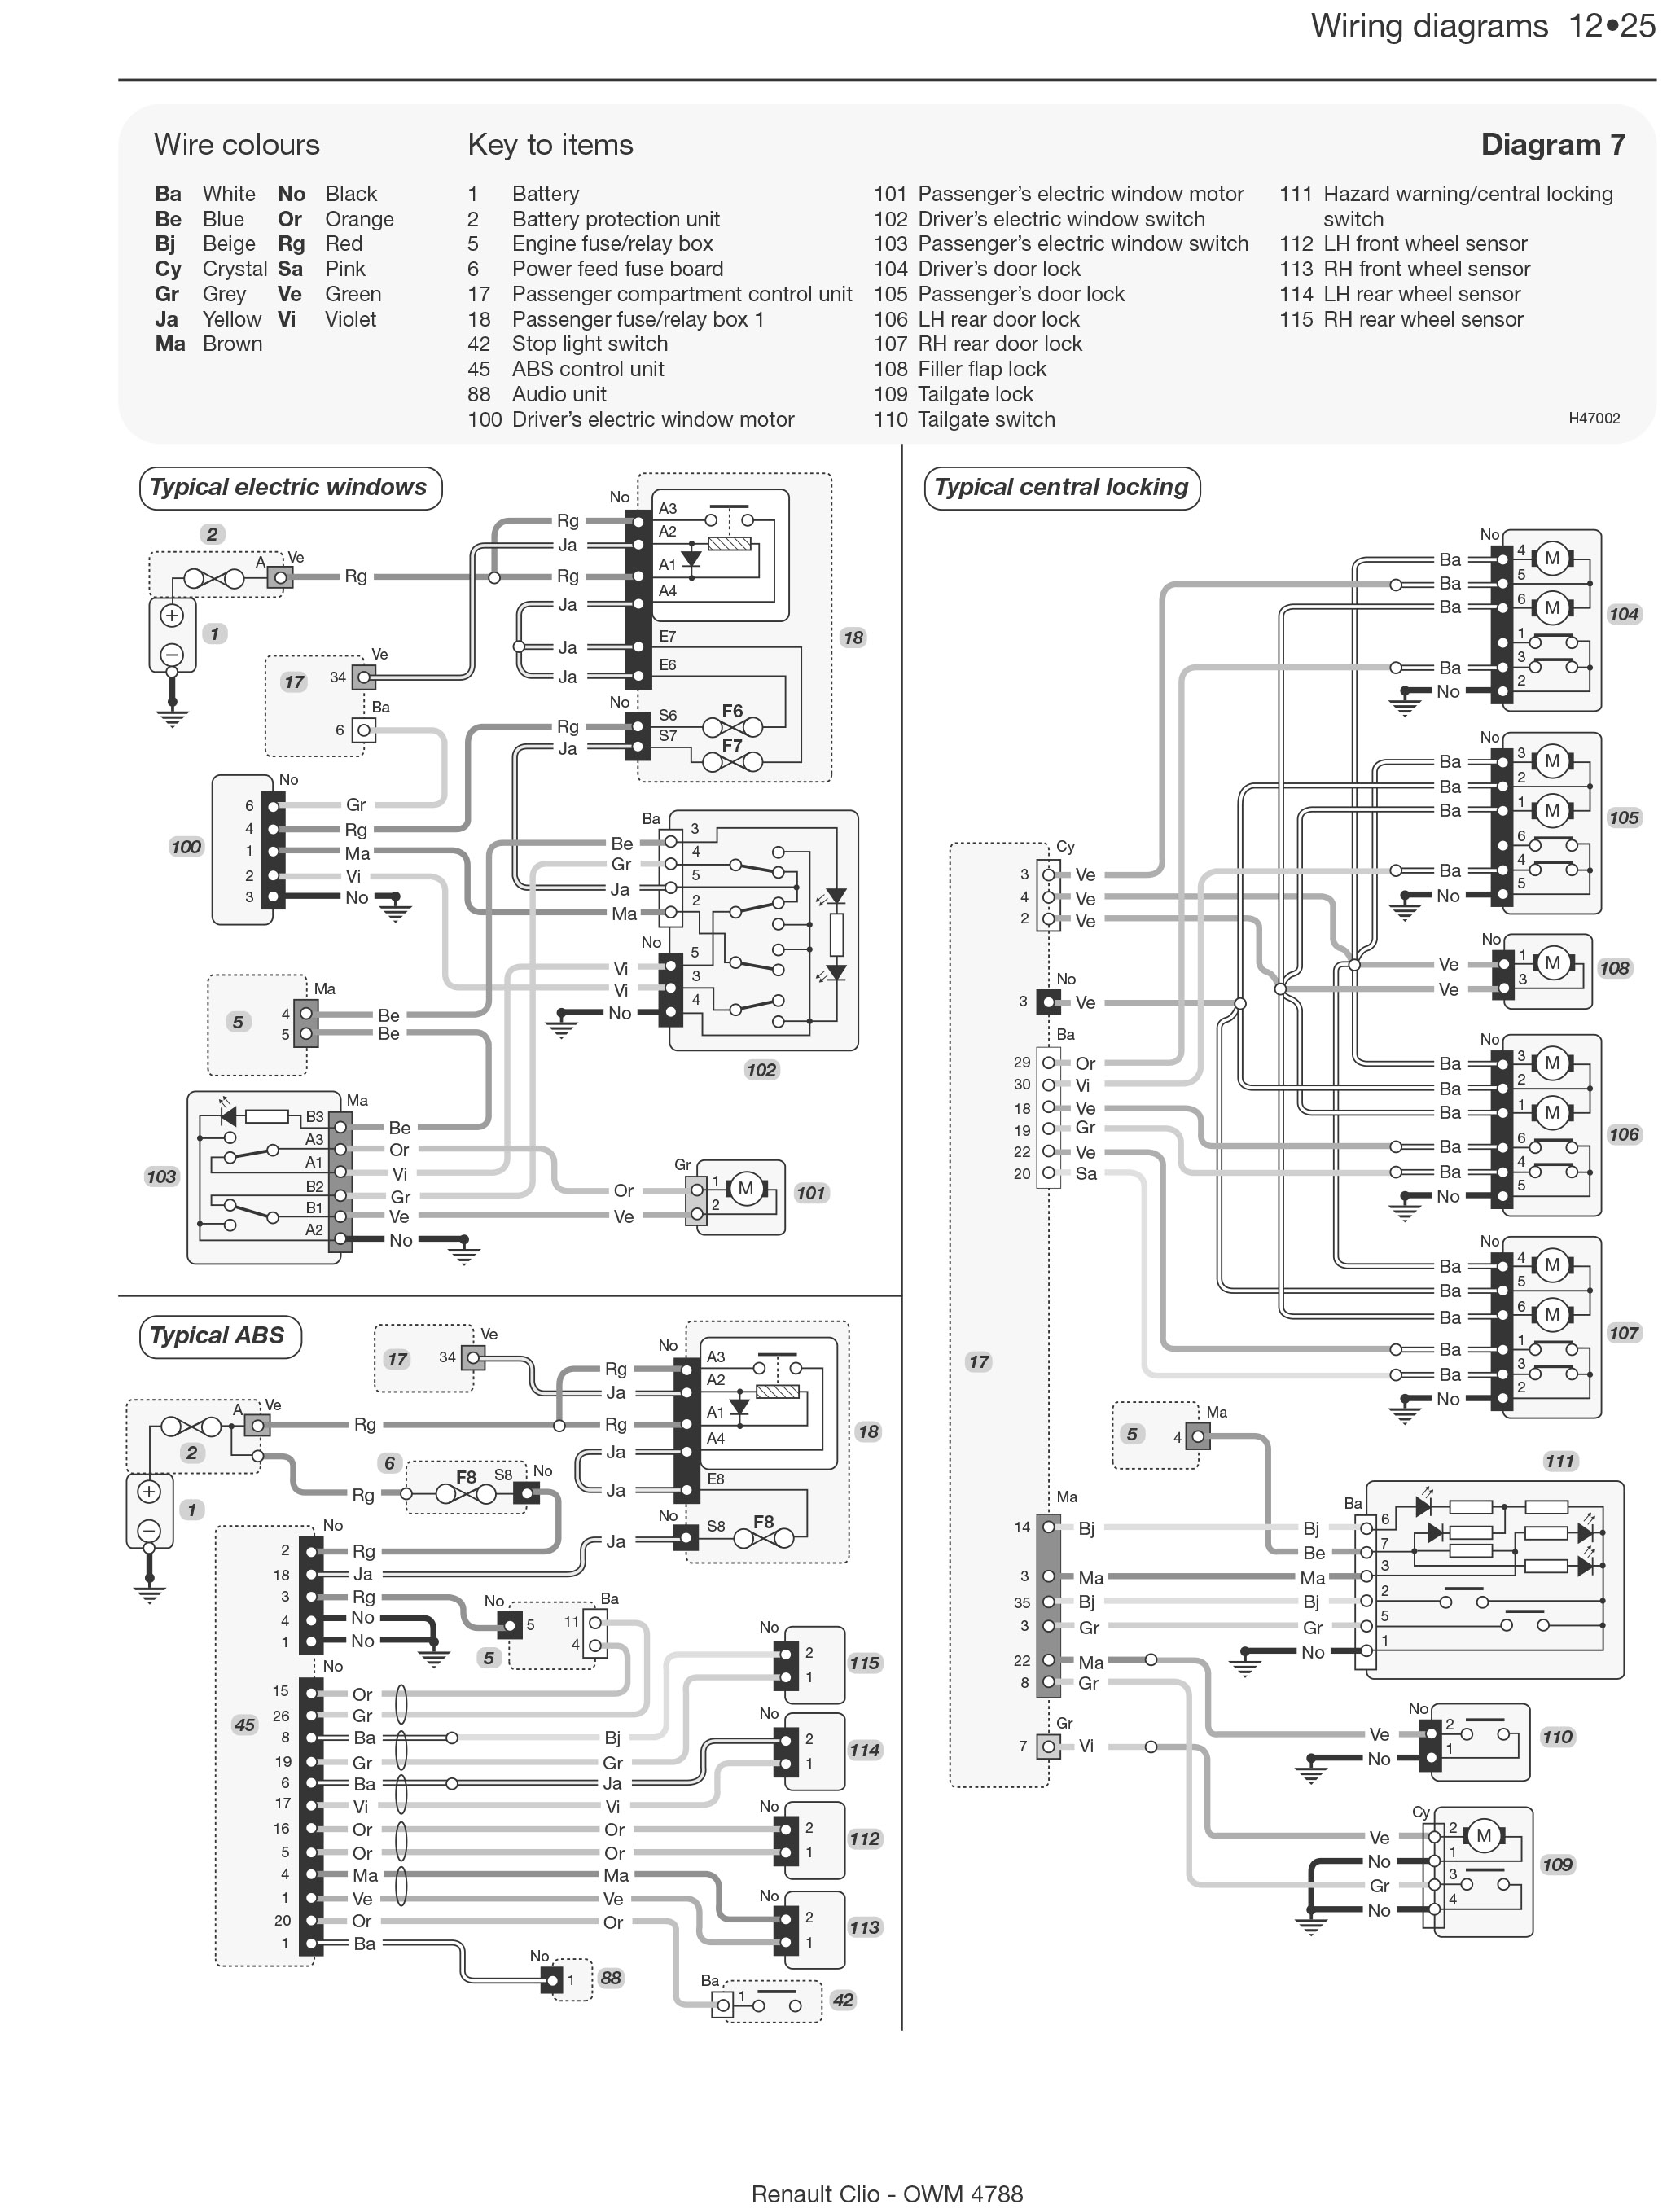 Renault Clio Diesel Wiring Diagram : Renault clio wiring diagram manual